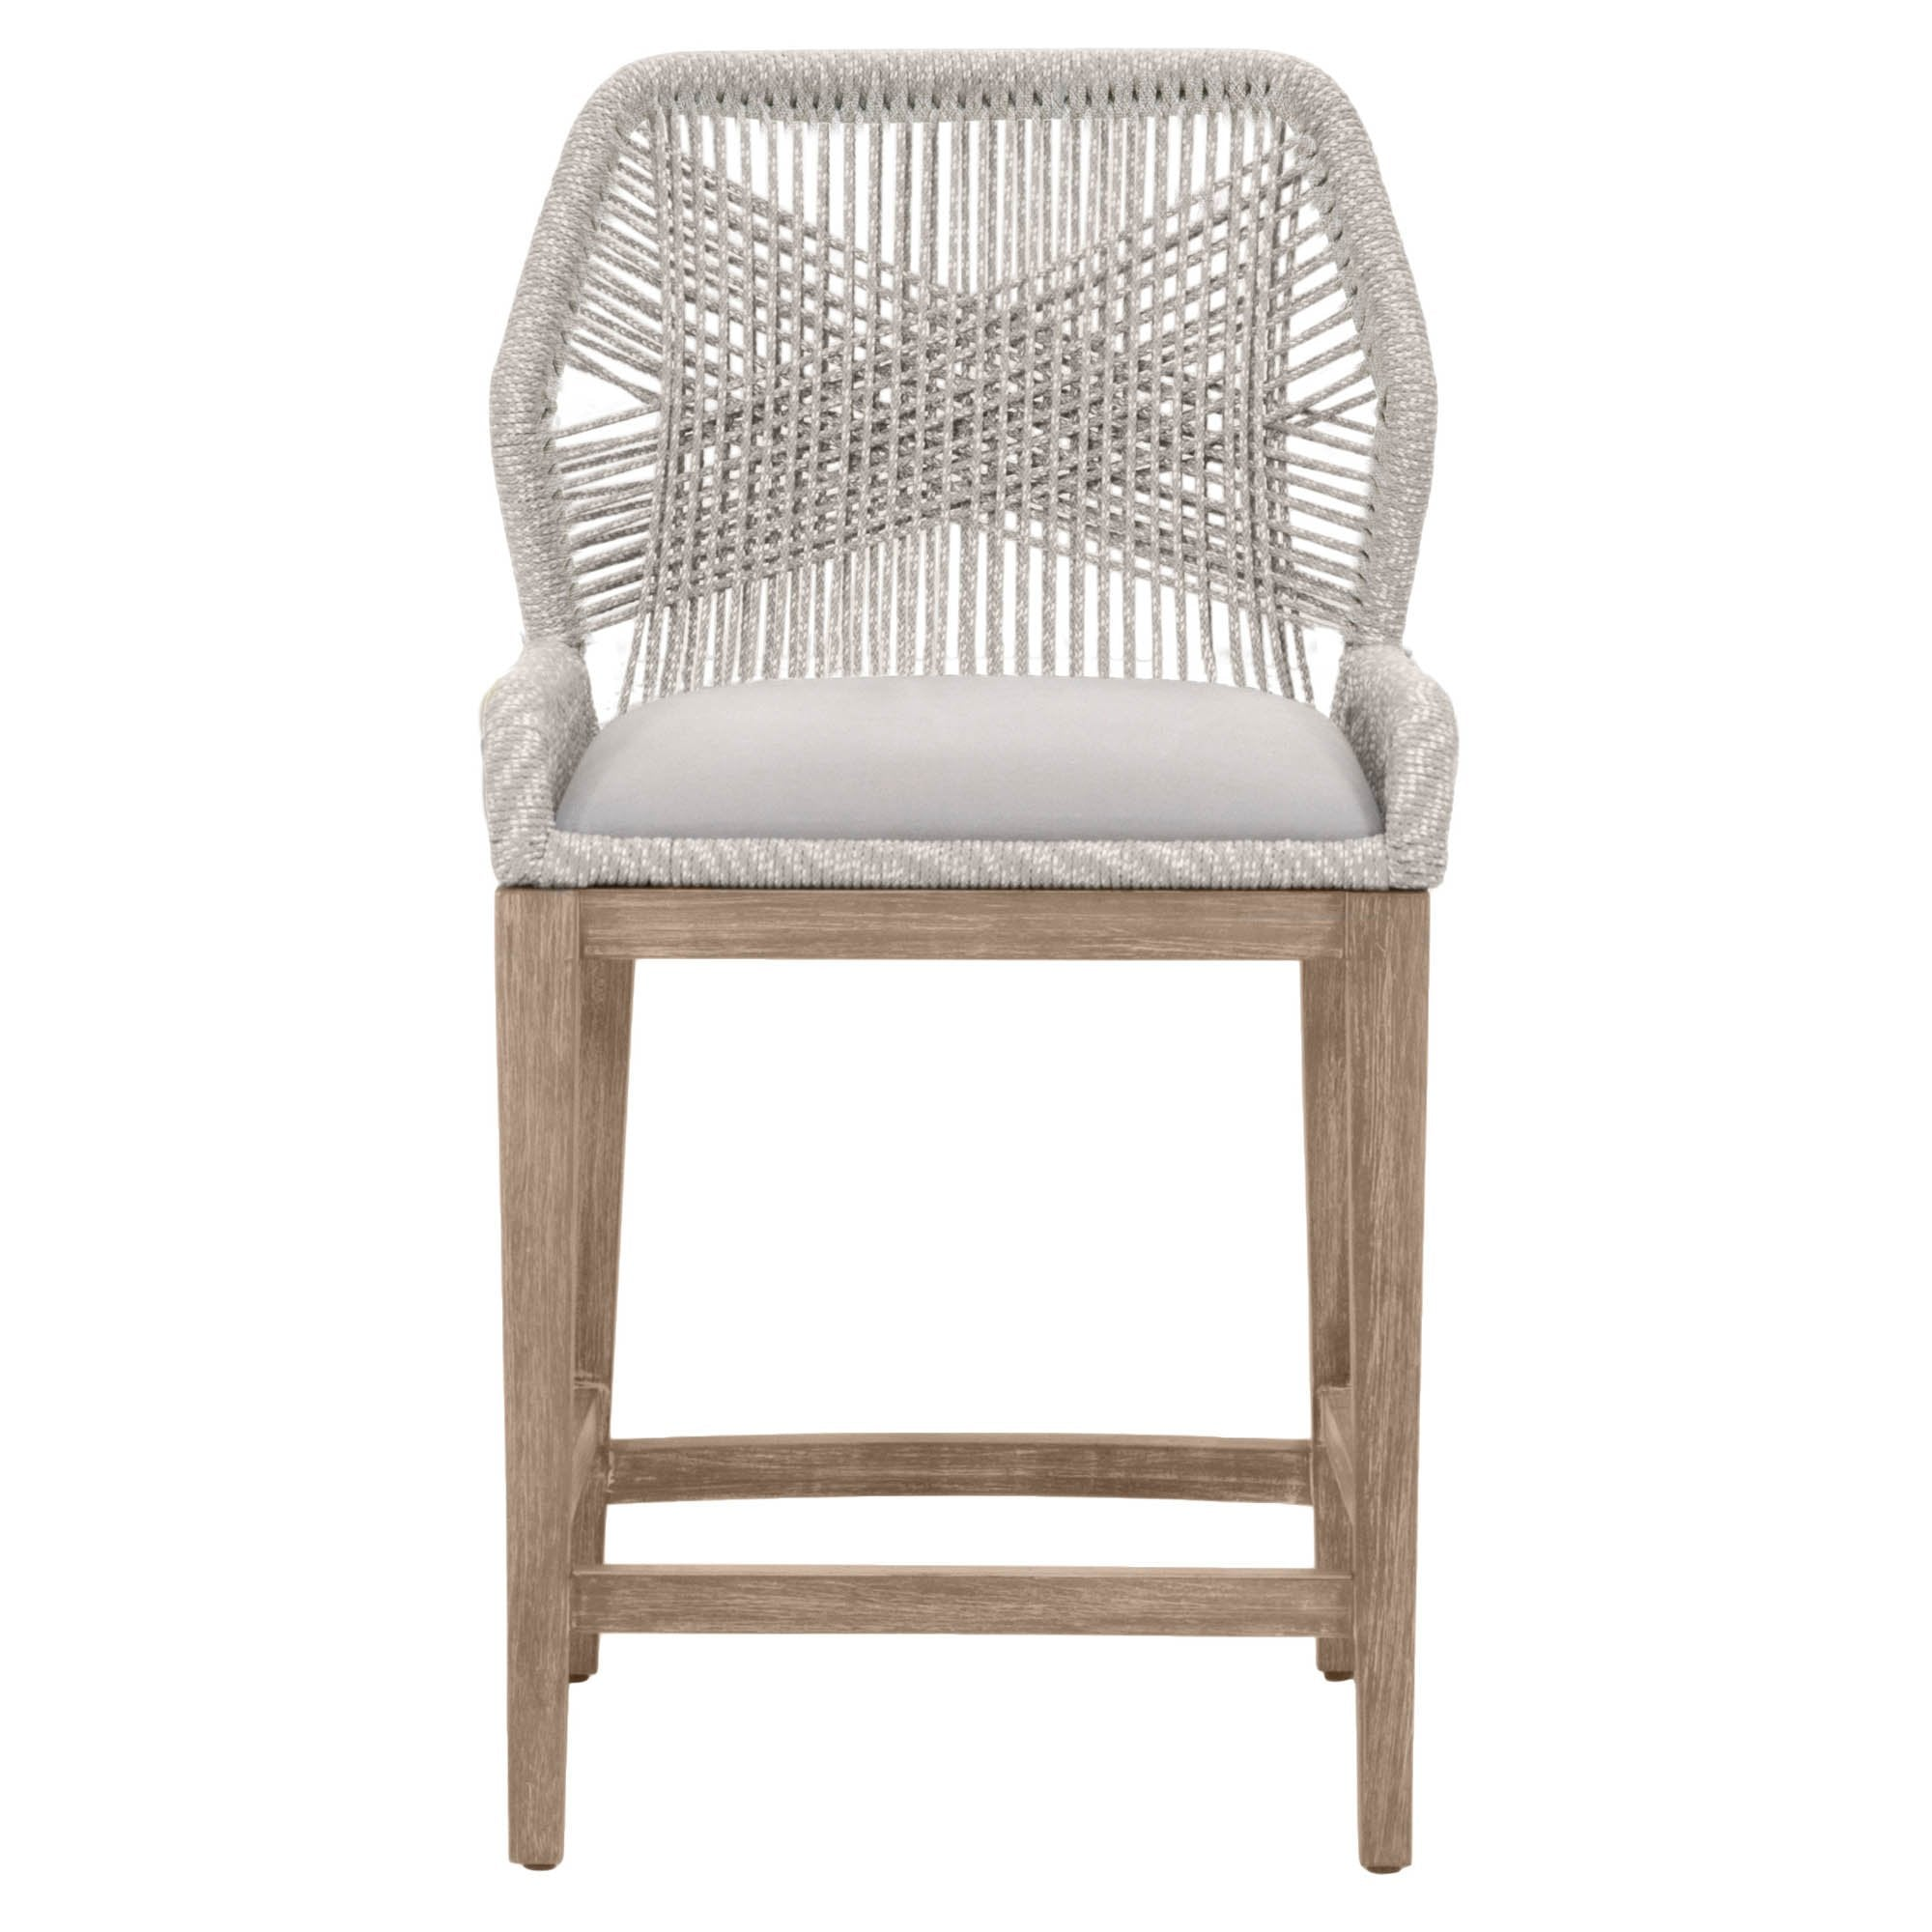 Loom Counter Stool in Taupe & White Flat Rope